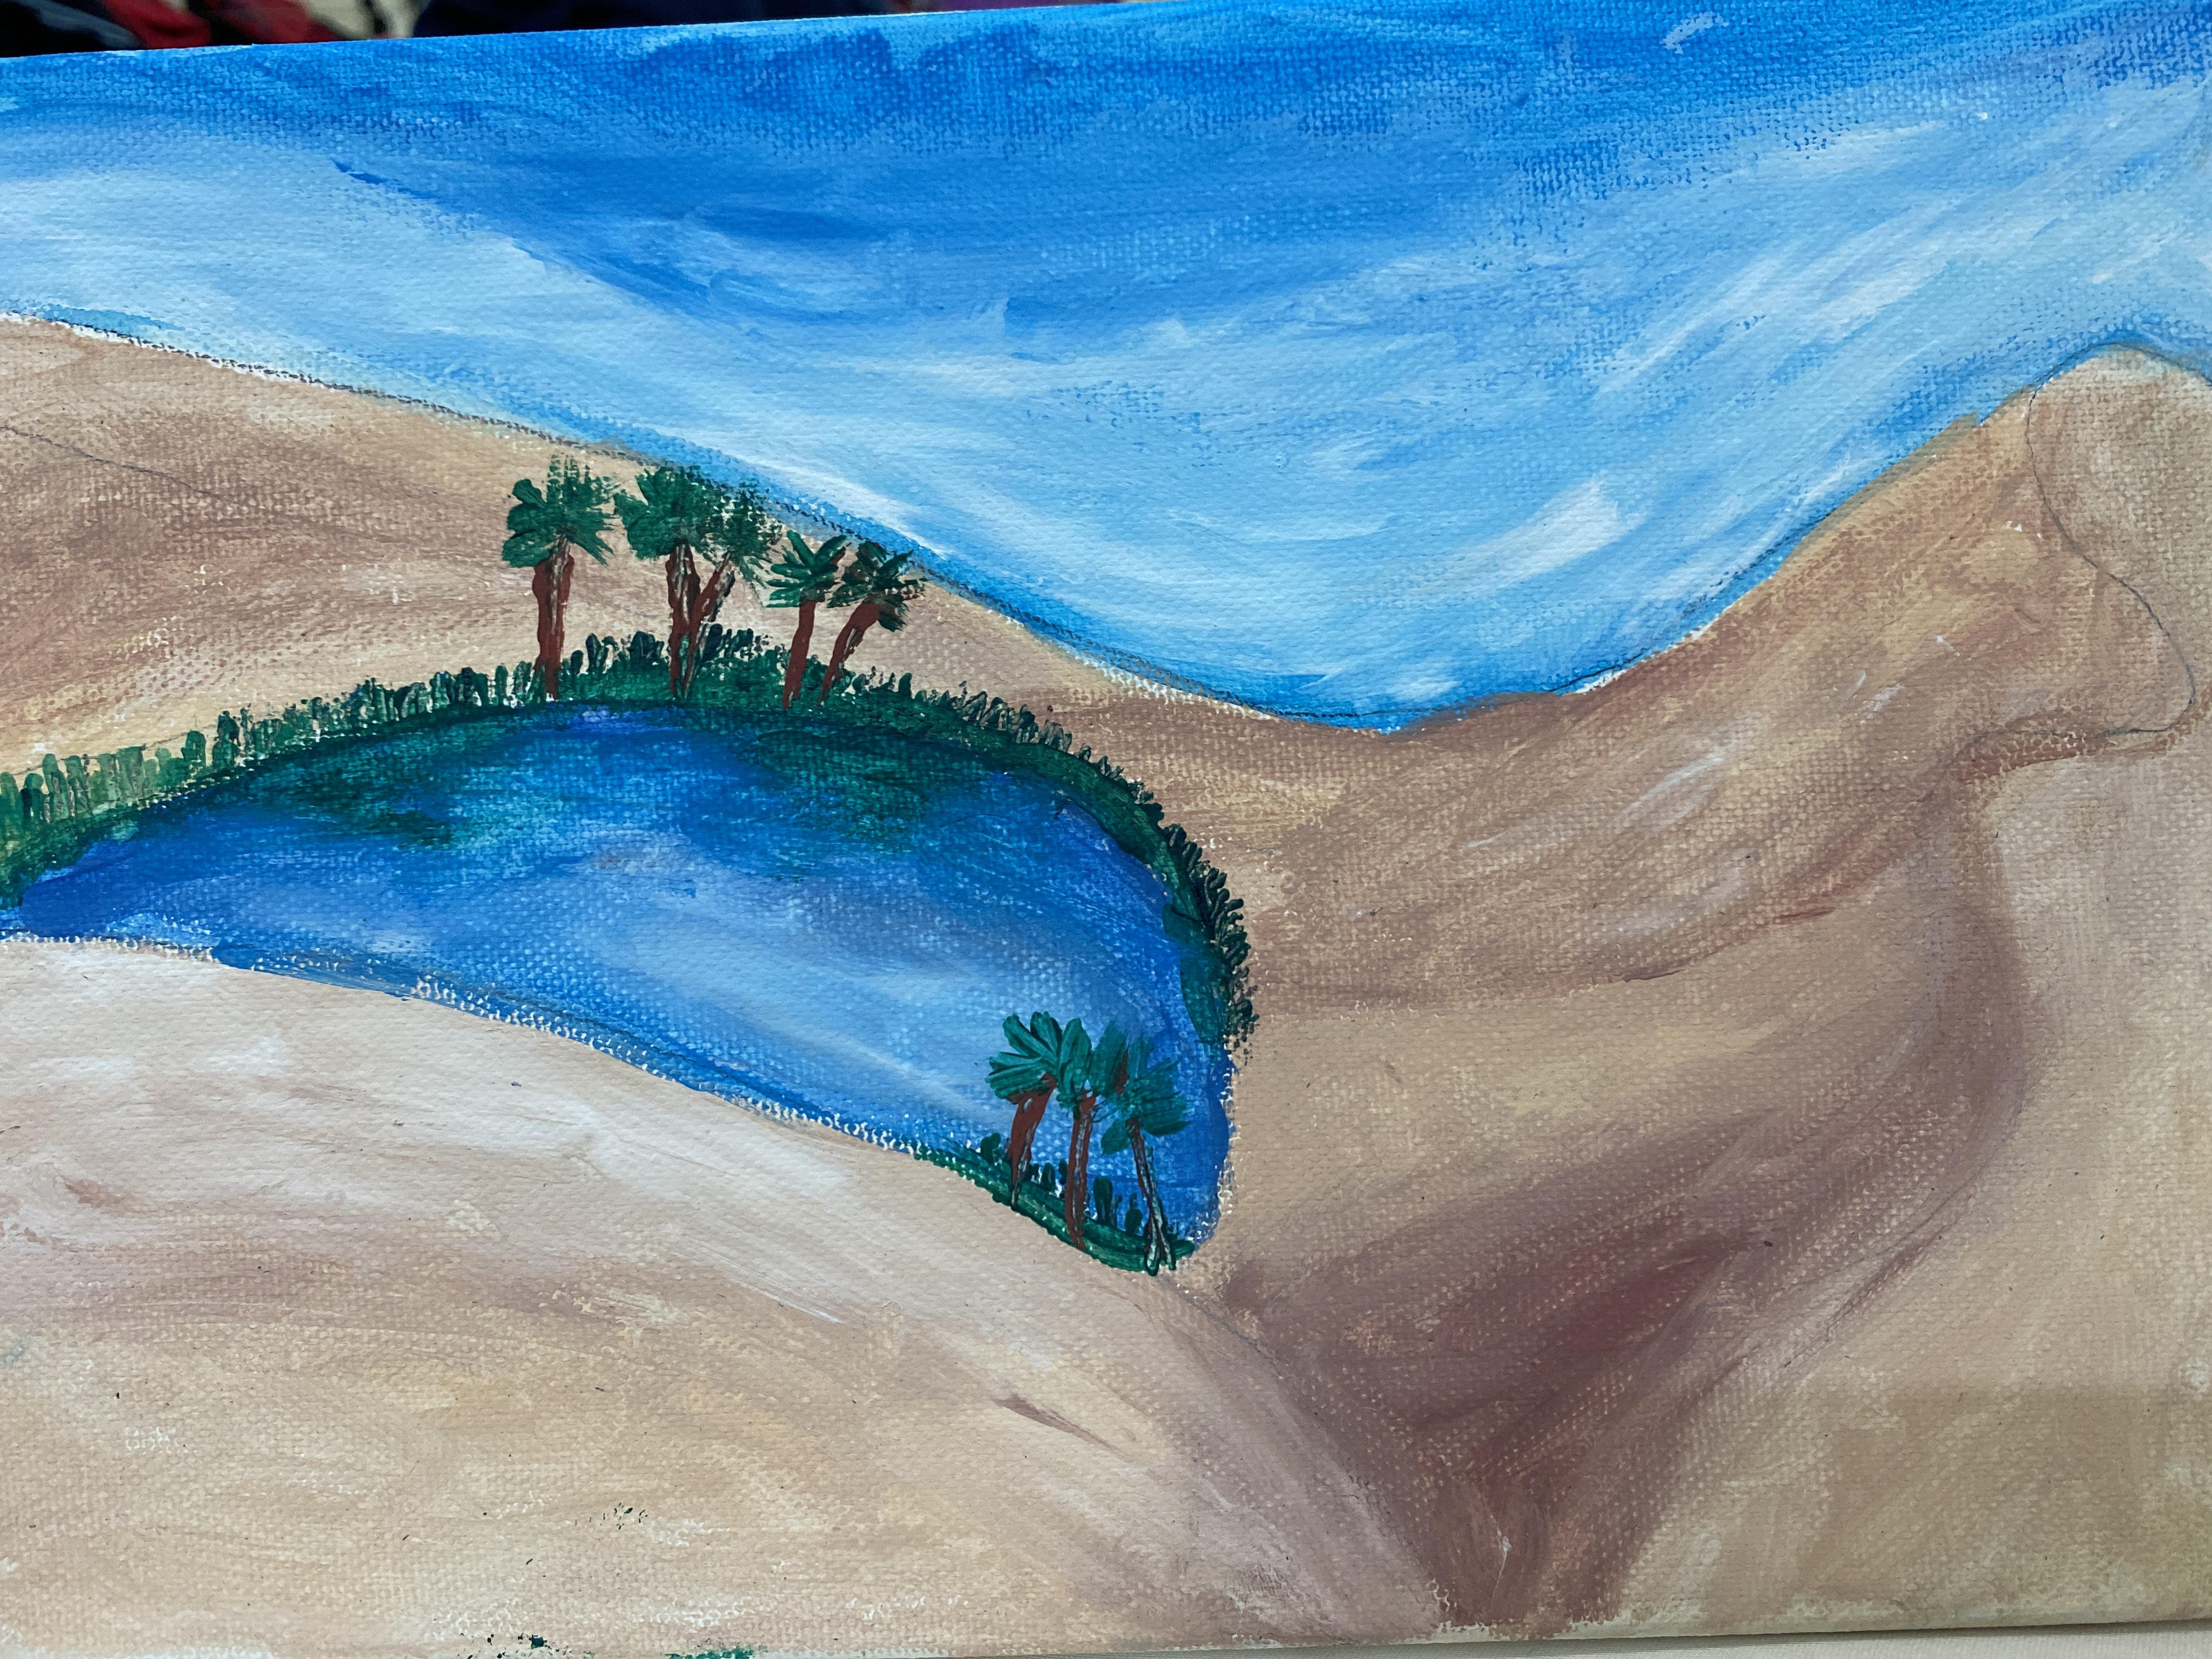 Life in the Oasis by Nidhi Francis